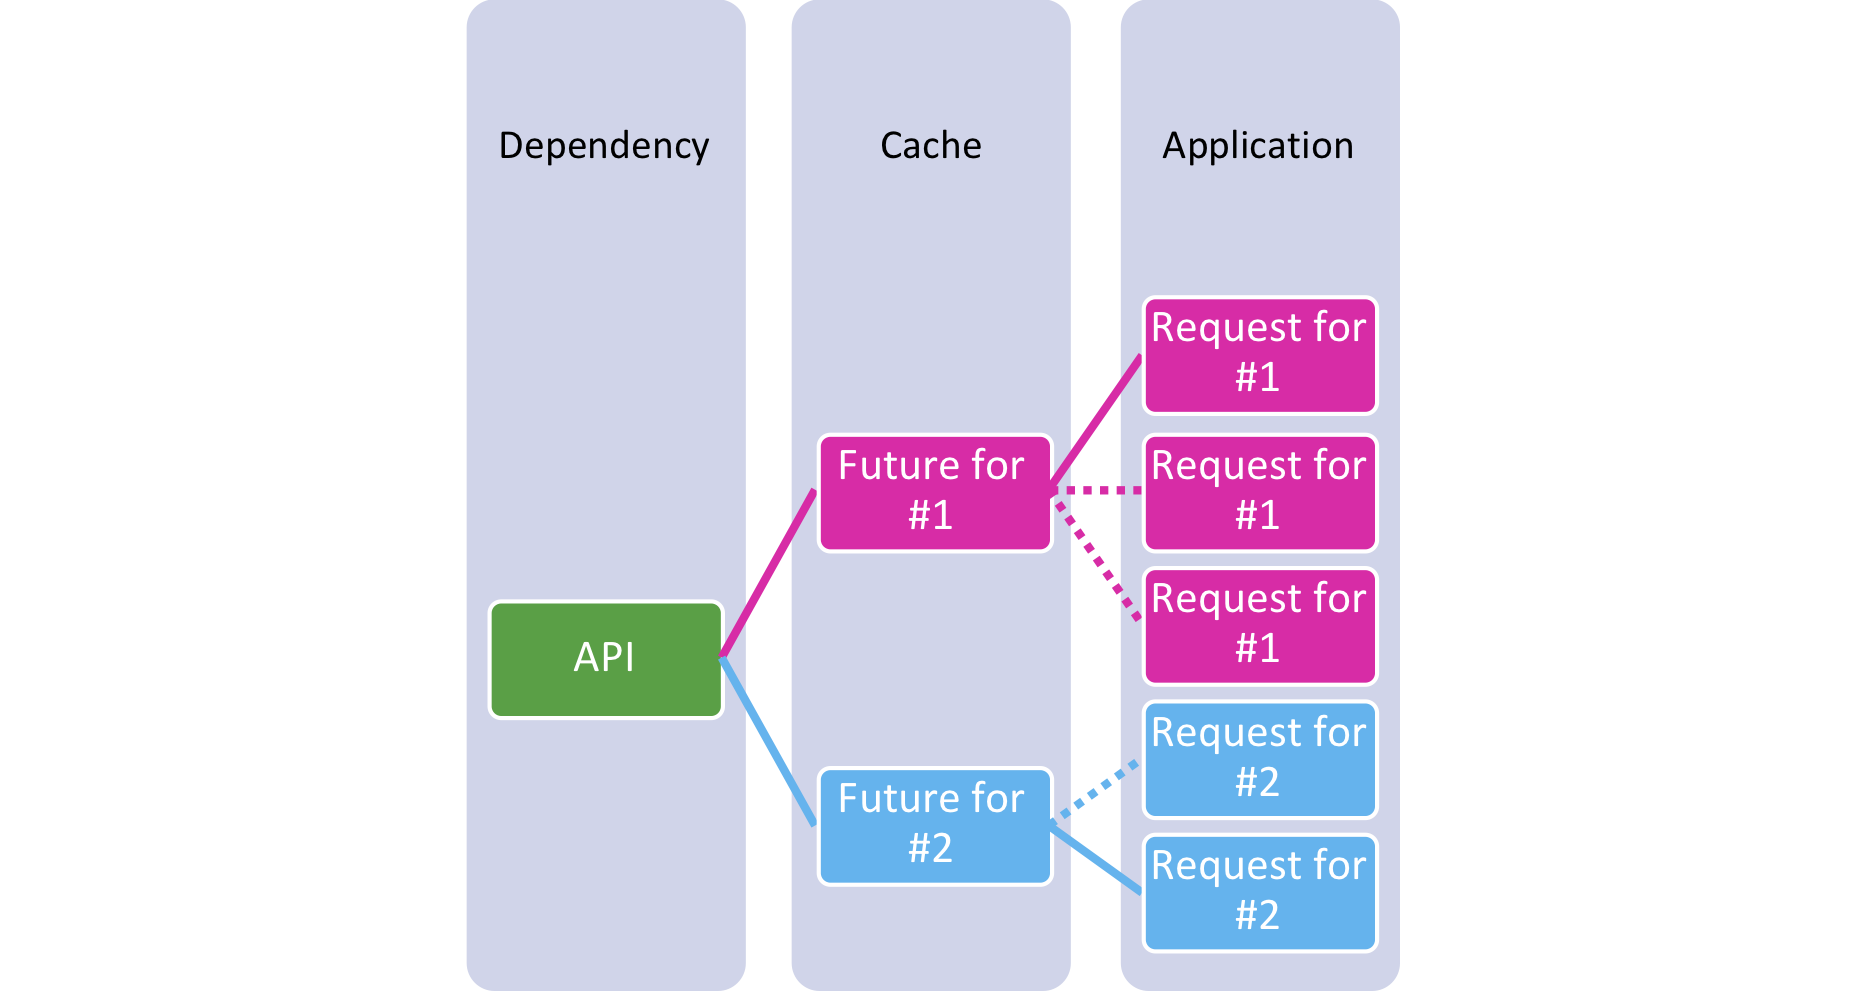 Figure 4: Requests collapsed to Futures in cache